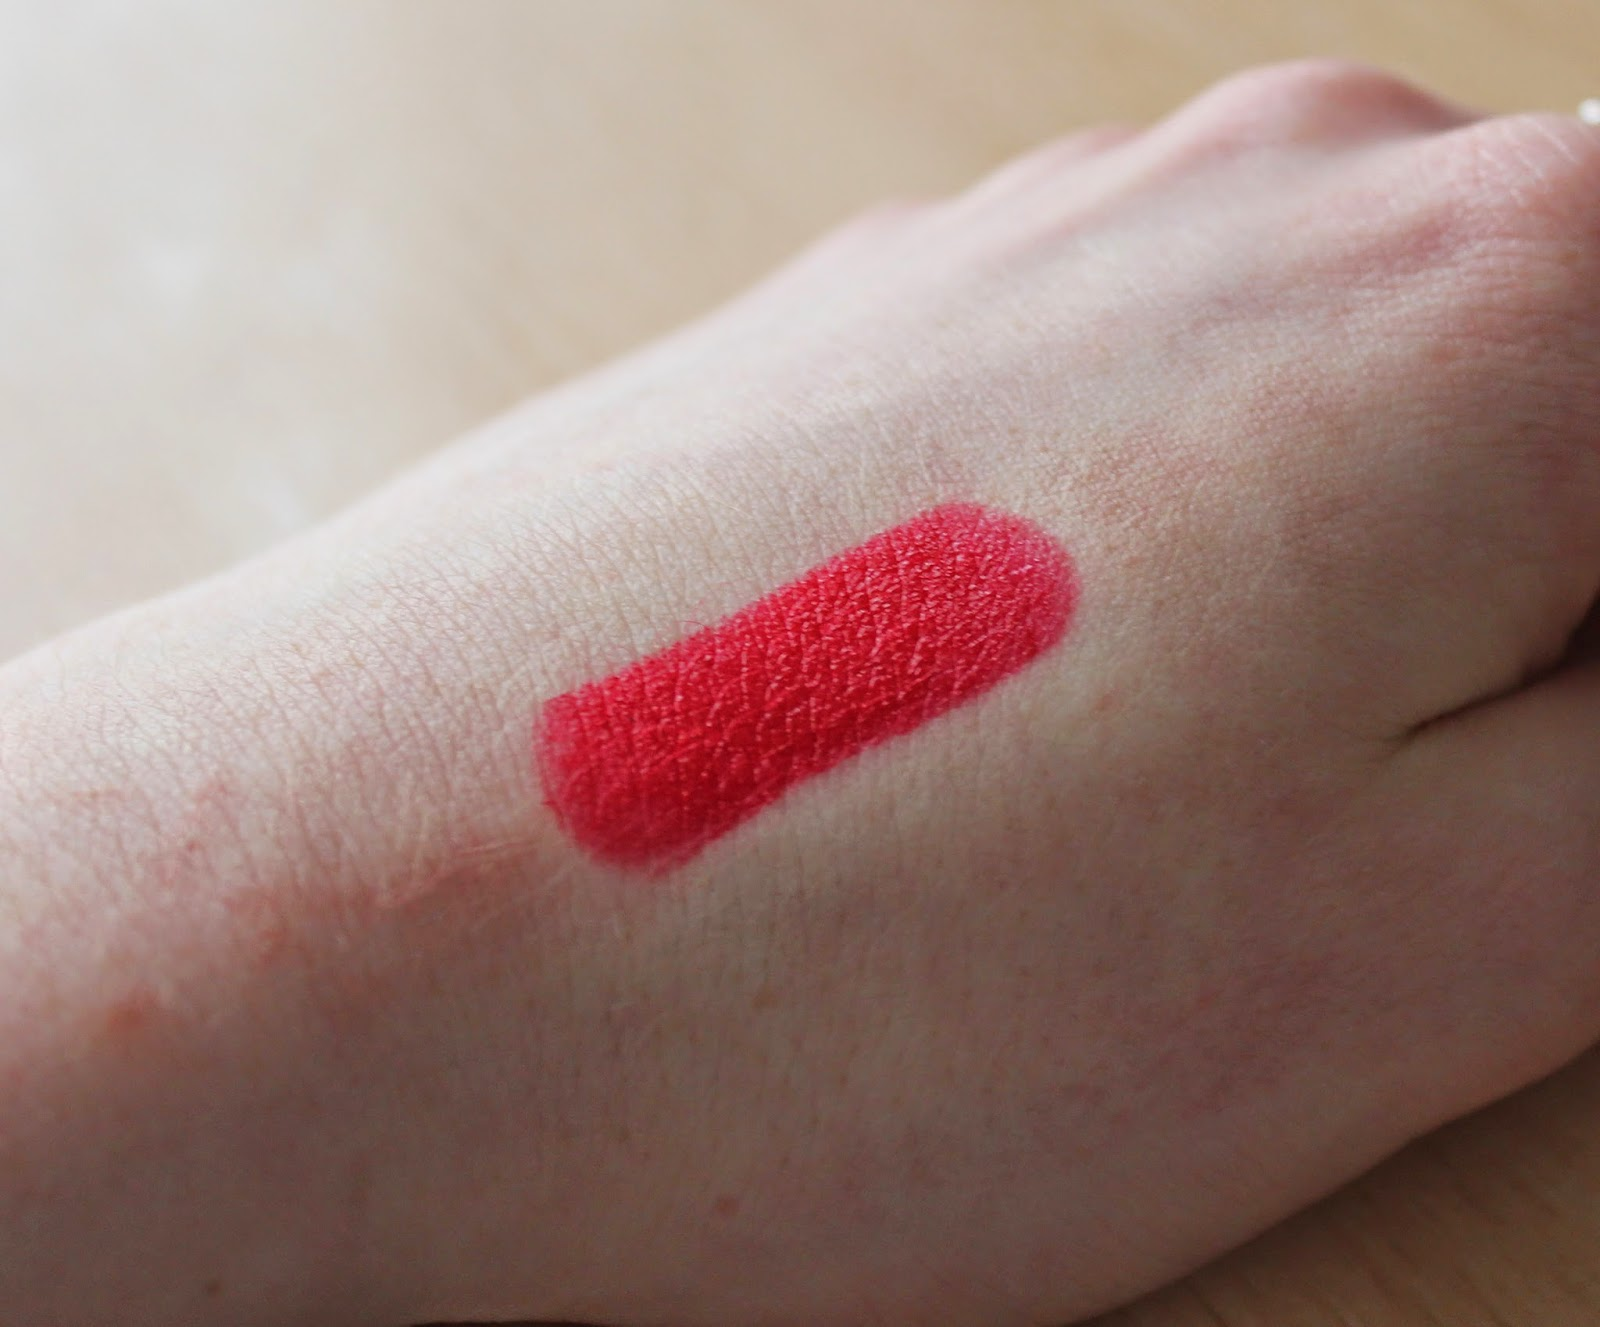 Beauty Bags And Baking Elizabeth Arden Red Door Red Lipstick Review